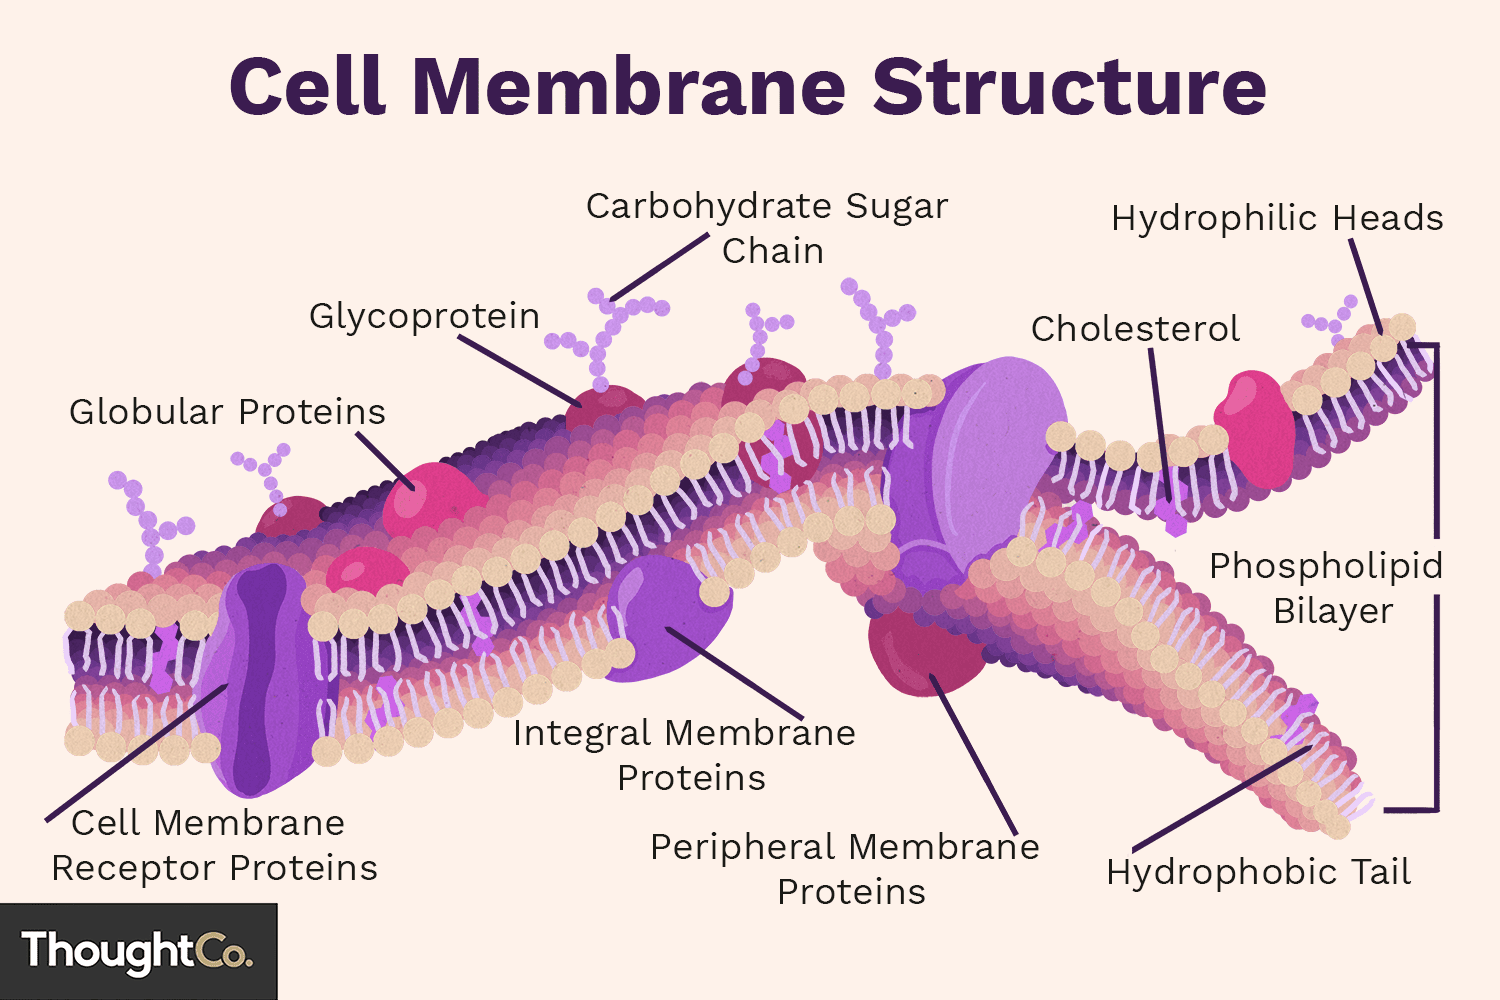 Cell Membrane Function And Structure Its Very Simple Just Follow The Diagram That I Attached